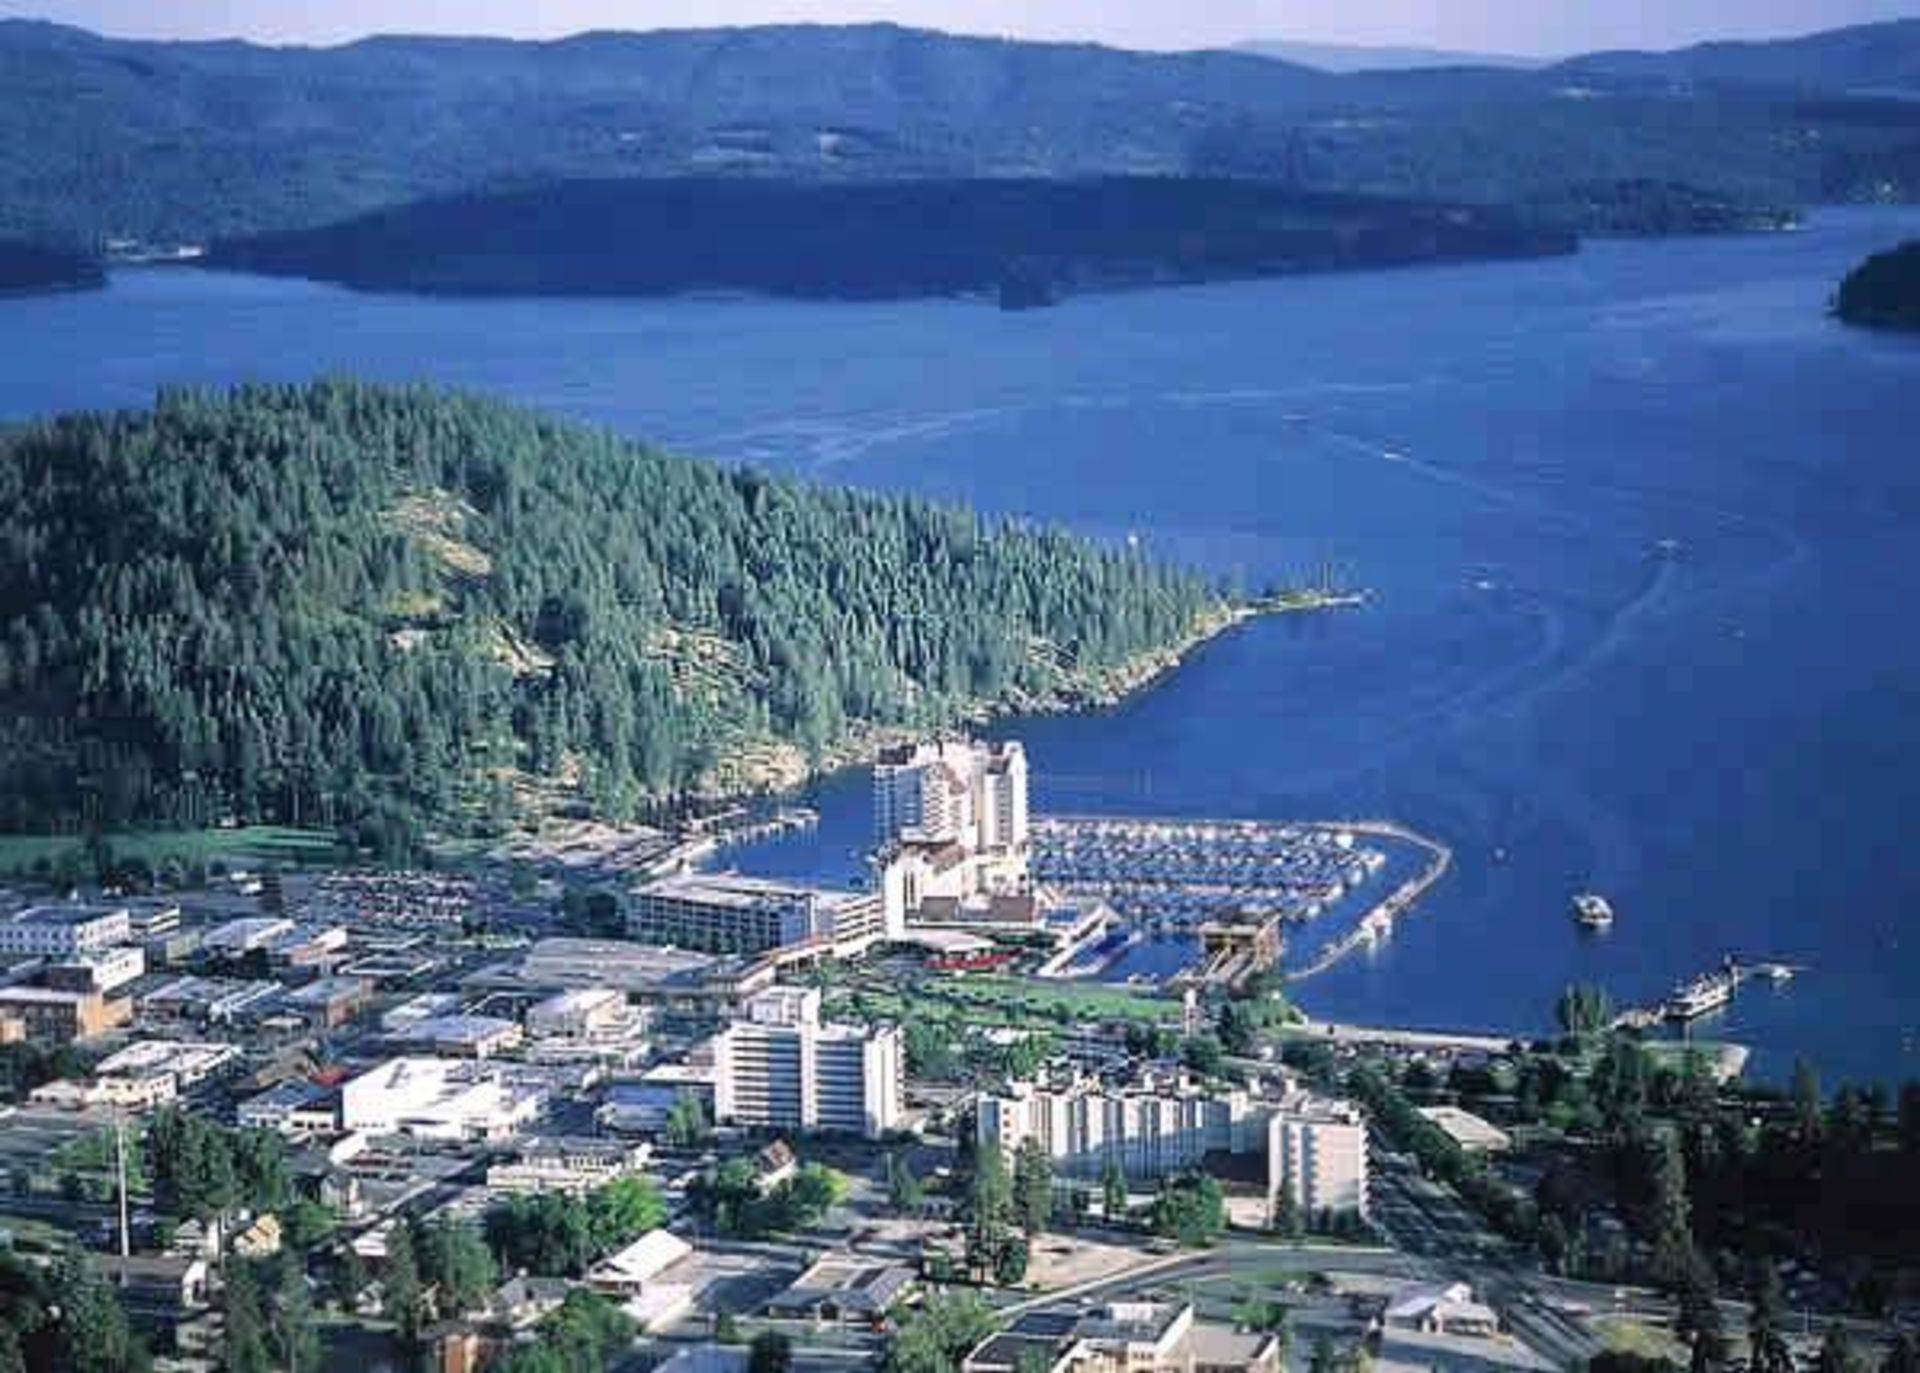 Short Term Rental Fees Adopted in Coeur d'Alene